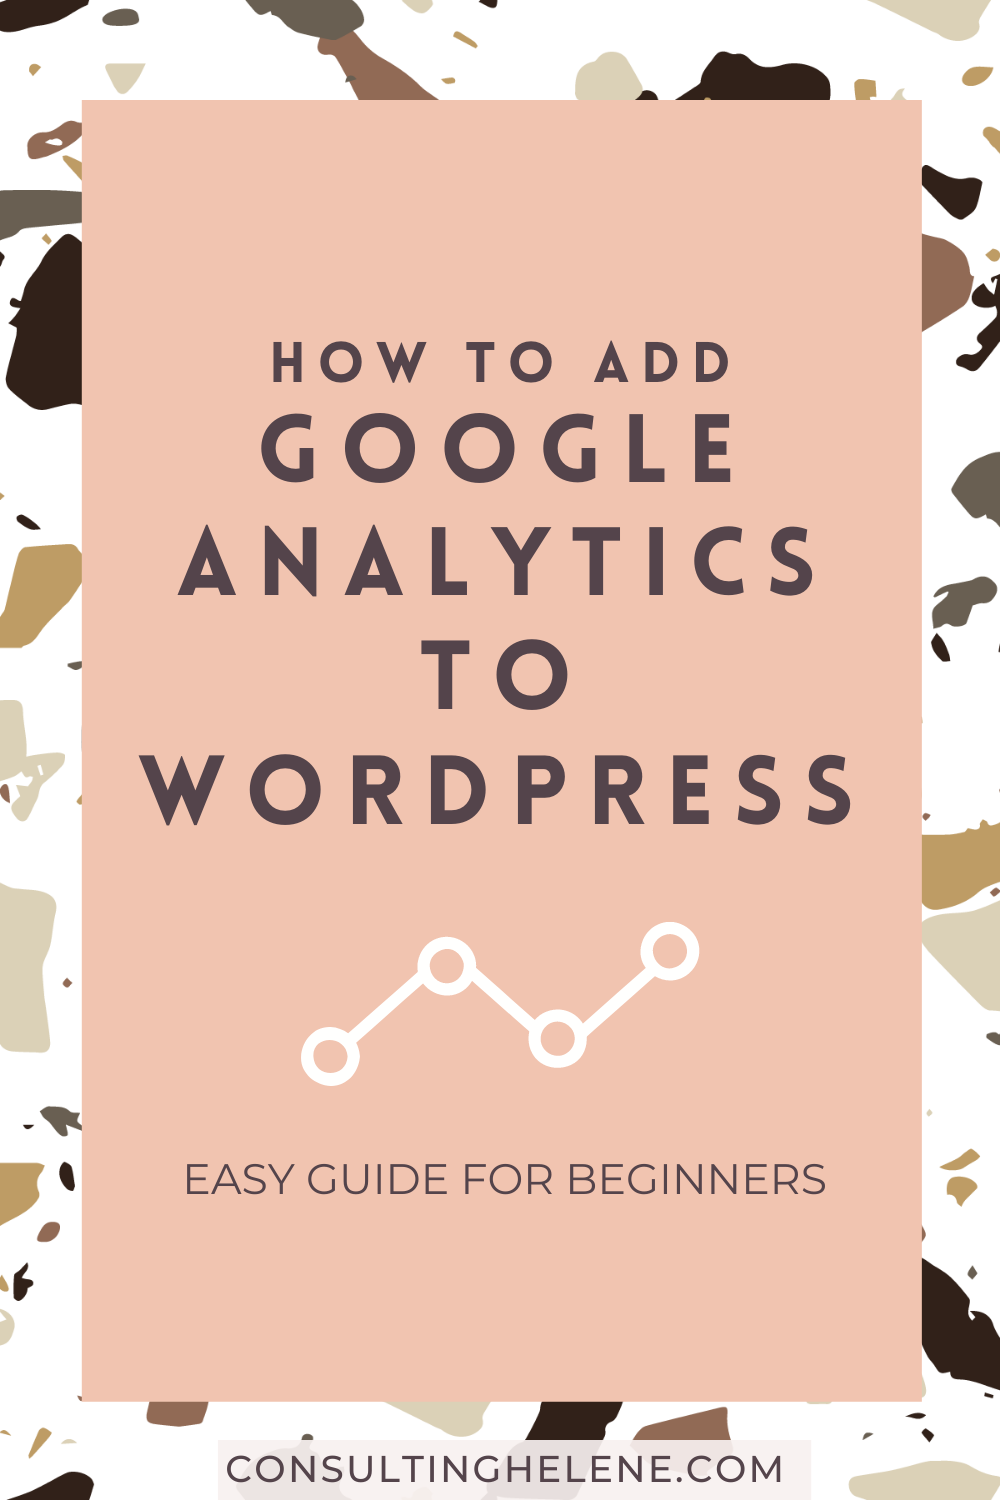 A Pinterest Pin with the text how to add Google Analytics to WordPress: Easy Guide for Beginners